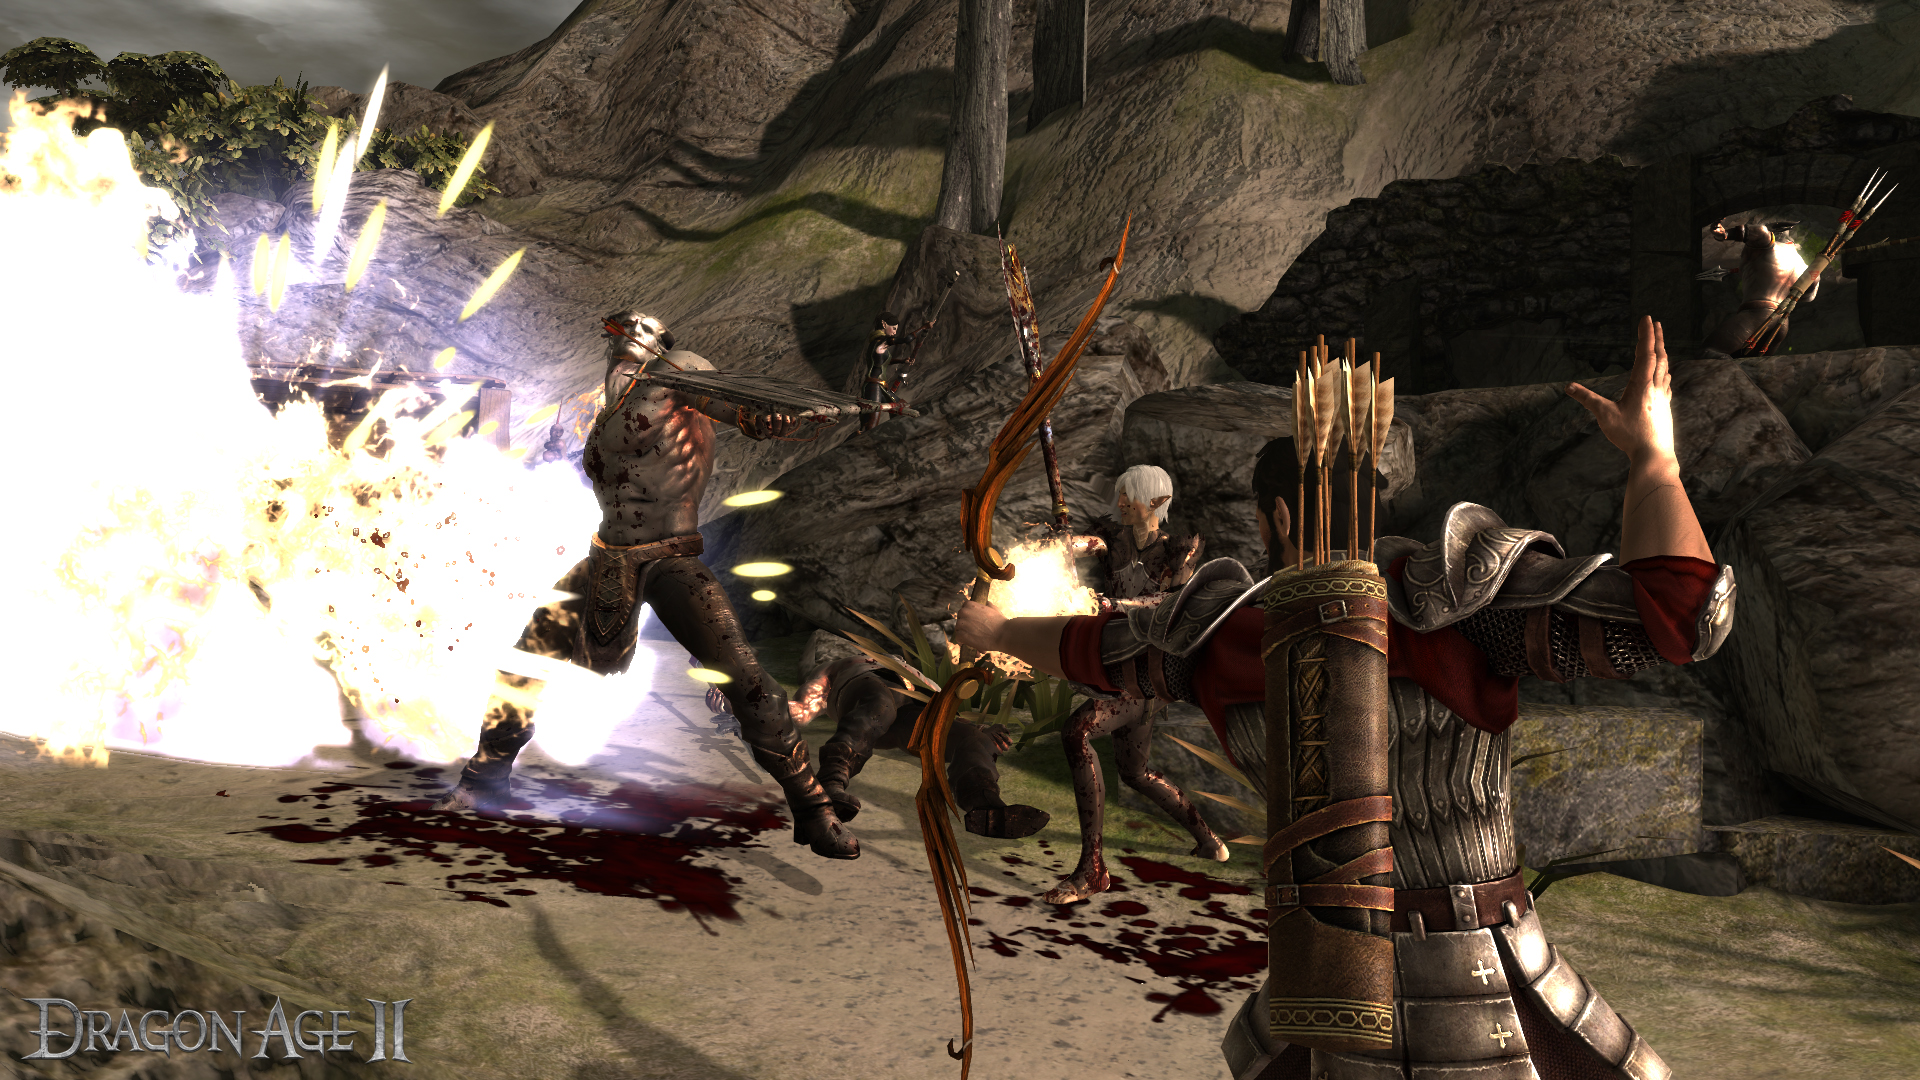 Guide to Dragon Age 2 Romance Building a Relationship with Fenris